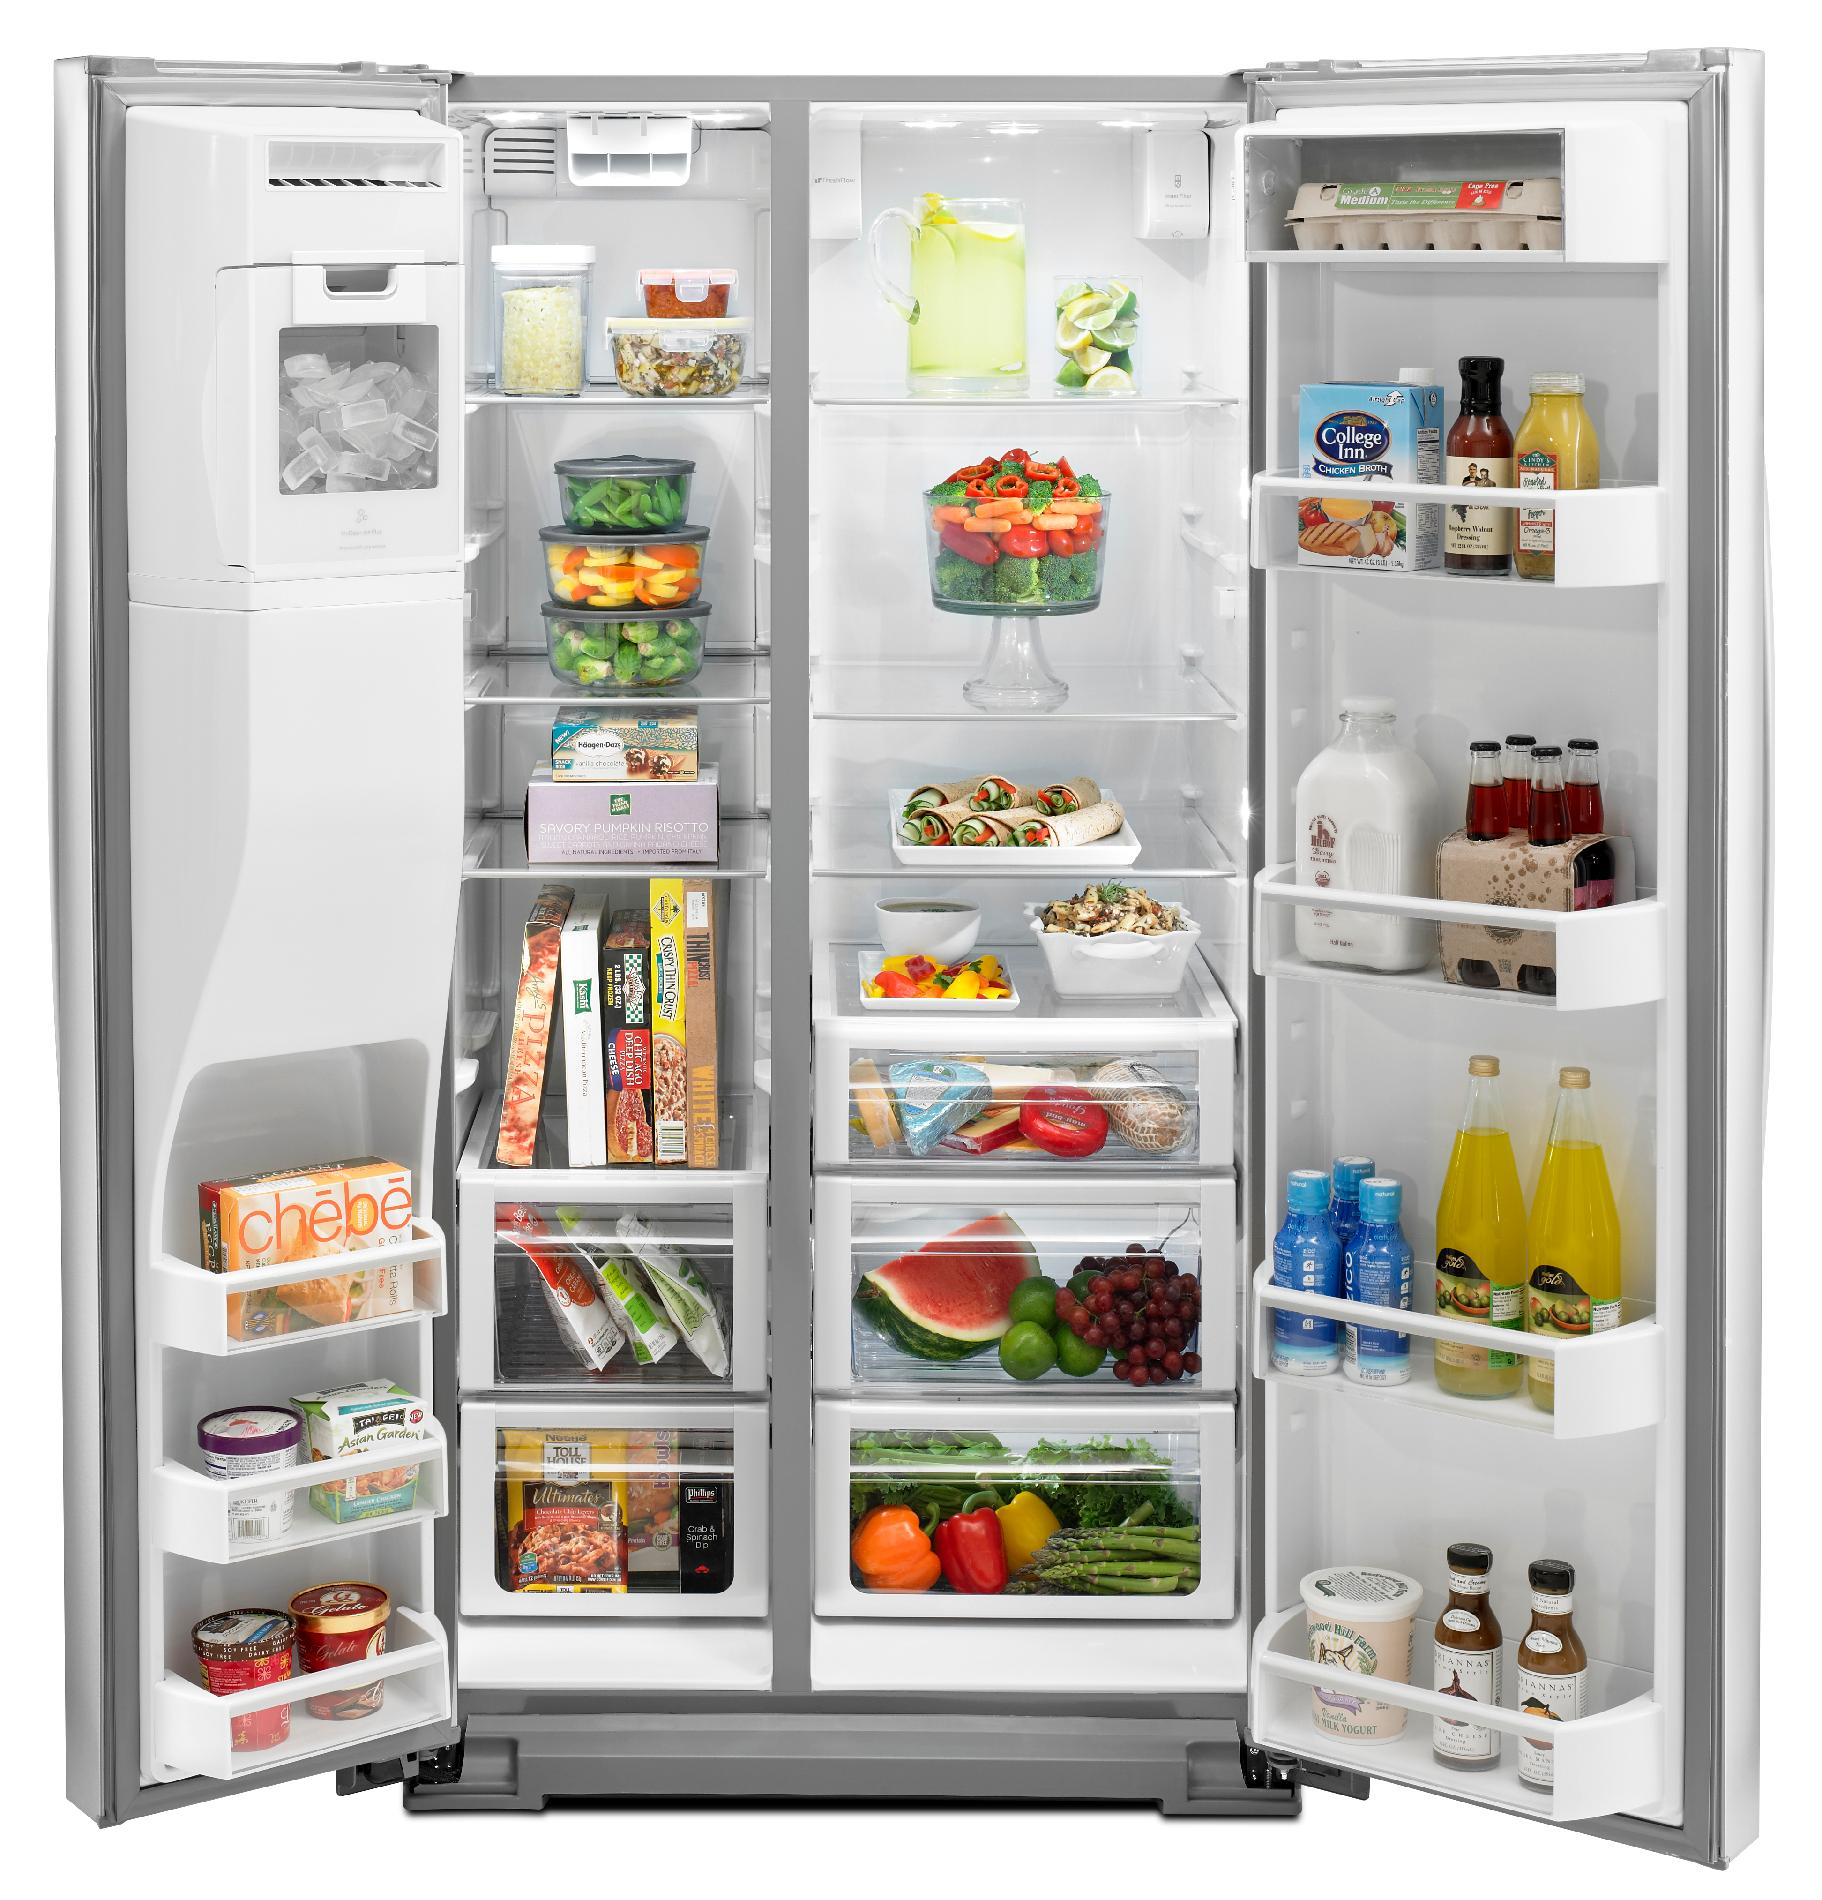 Whirlpool 29.7 cu. ft. Side-by-Side Refrigerator w/ MicroEdge® Shelves - Stainless Steel